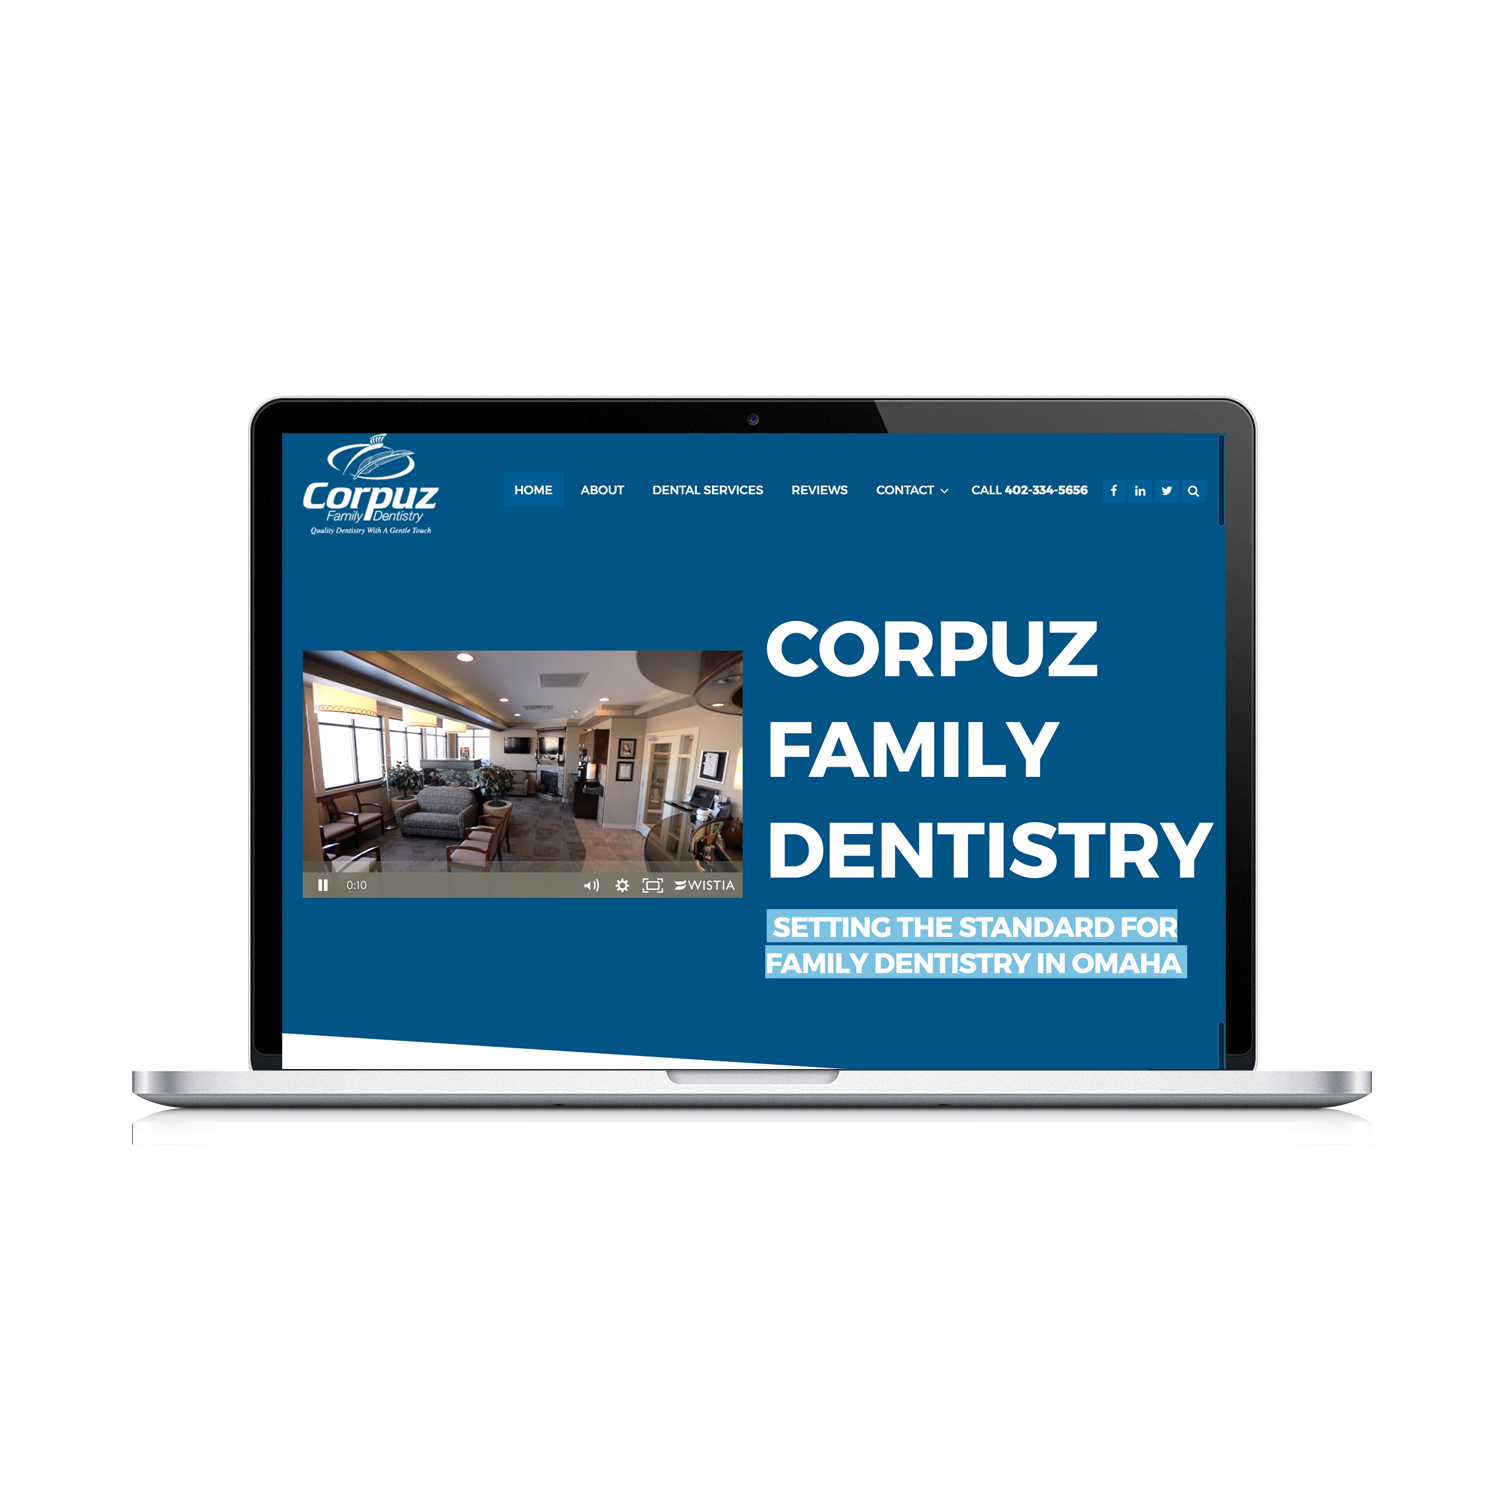 Corpuz Family Dentistry Website